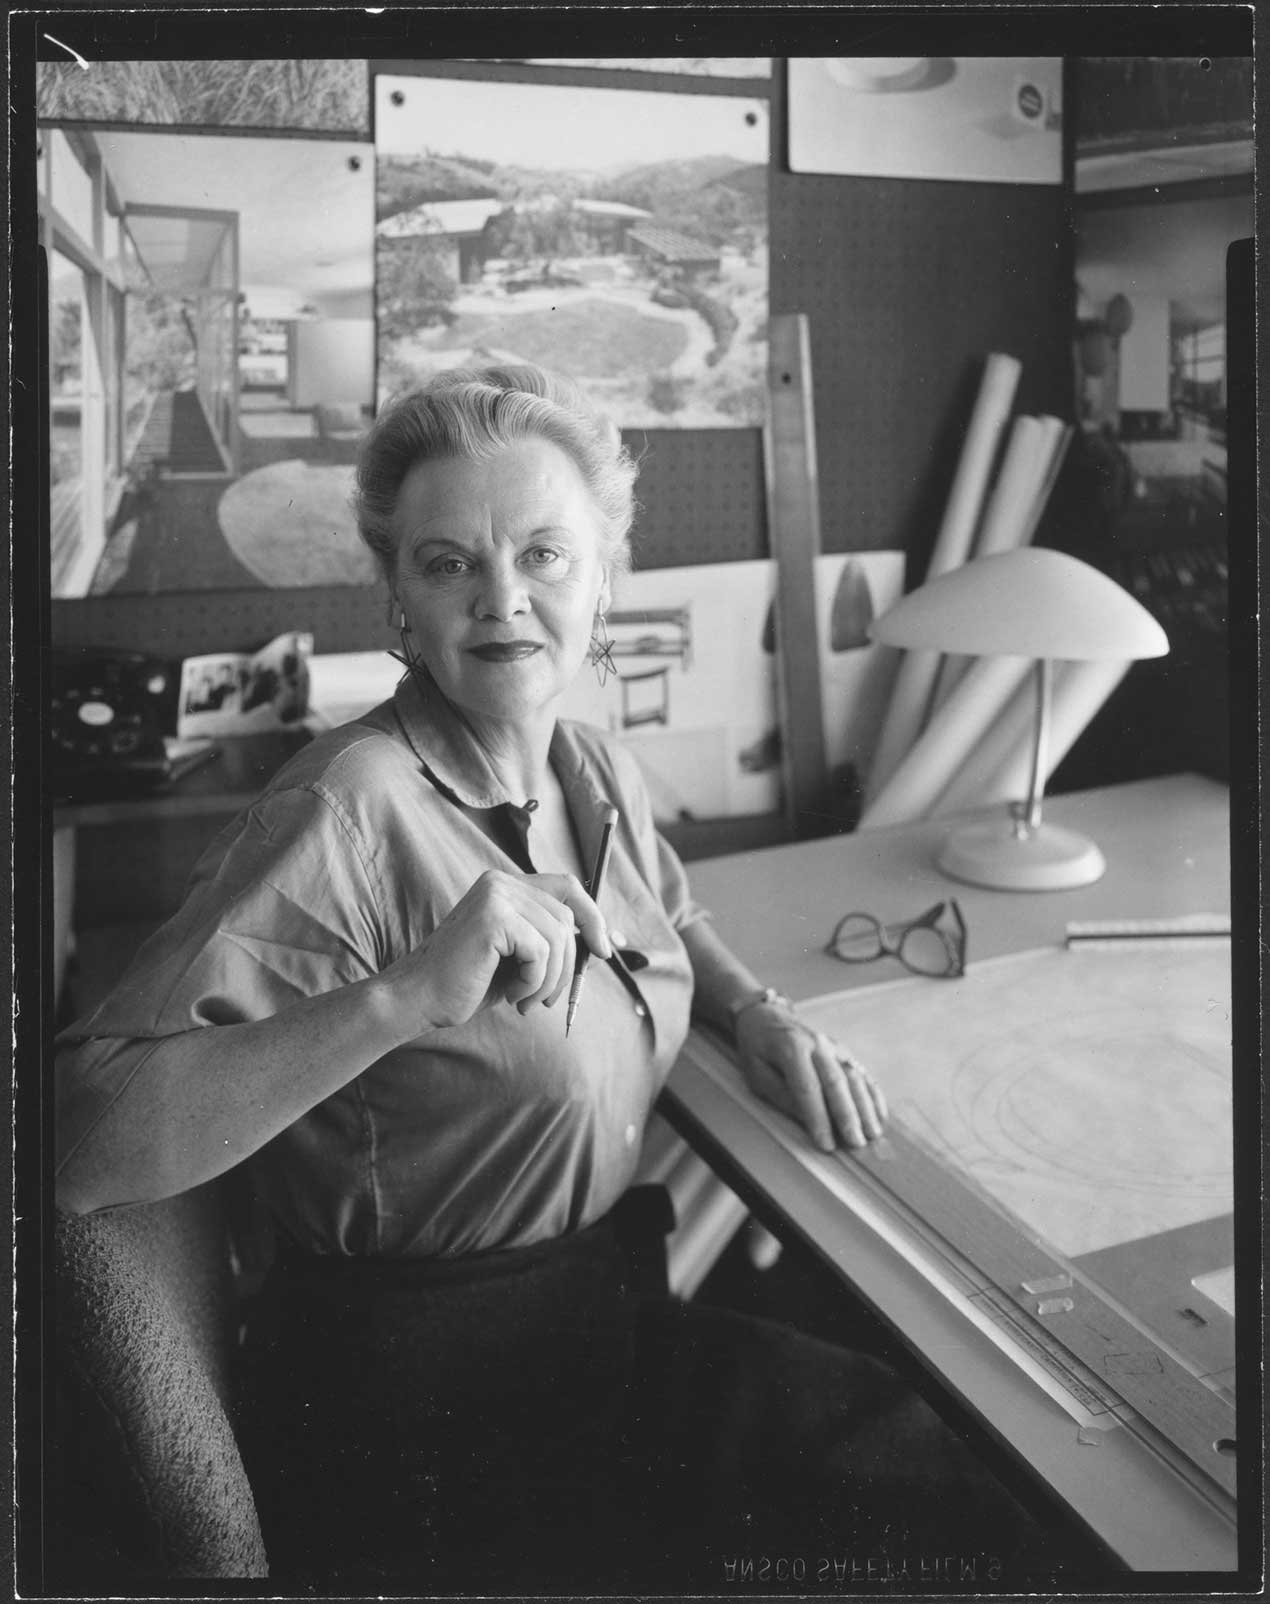 Architect Greta Magnusson Grossman photographed by Julius Shulman in 1959